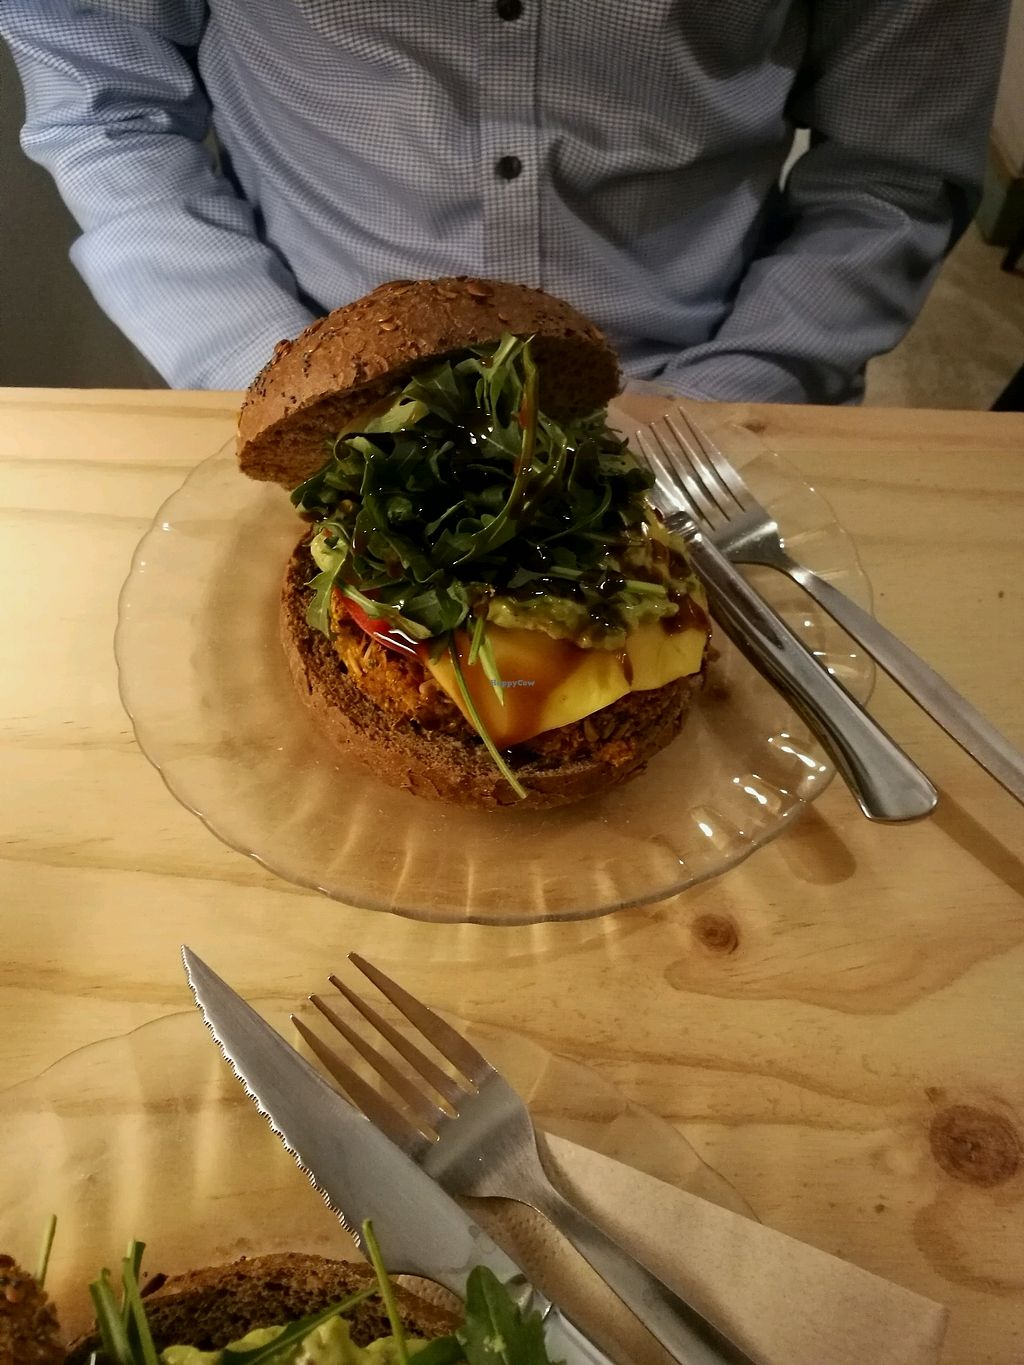 """Photo of La Camelia Vegan Bar  by <a href=""""/members/profile/Caciquenl"""">Caciquenl</a> <br/>vegan burger  <br/> February 5, 2018  - <a href='/contact/abuse/image/57833/355417'>Report</a>"""